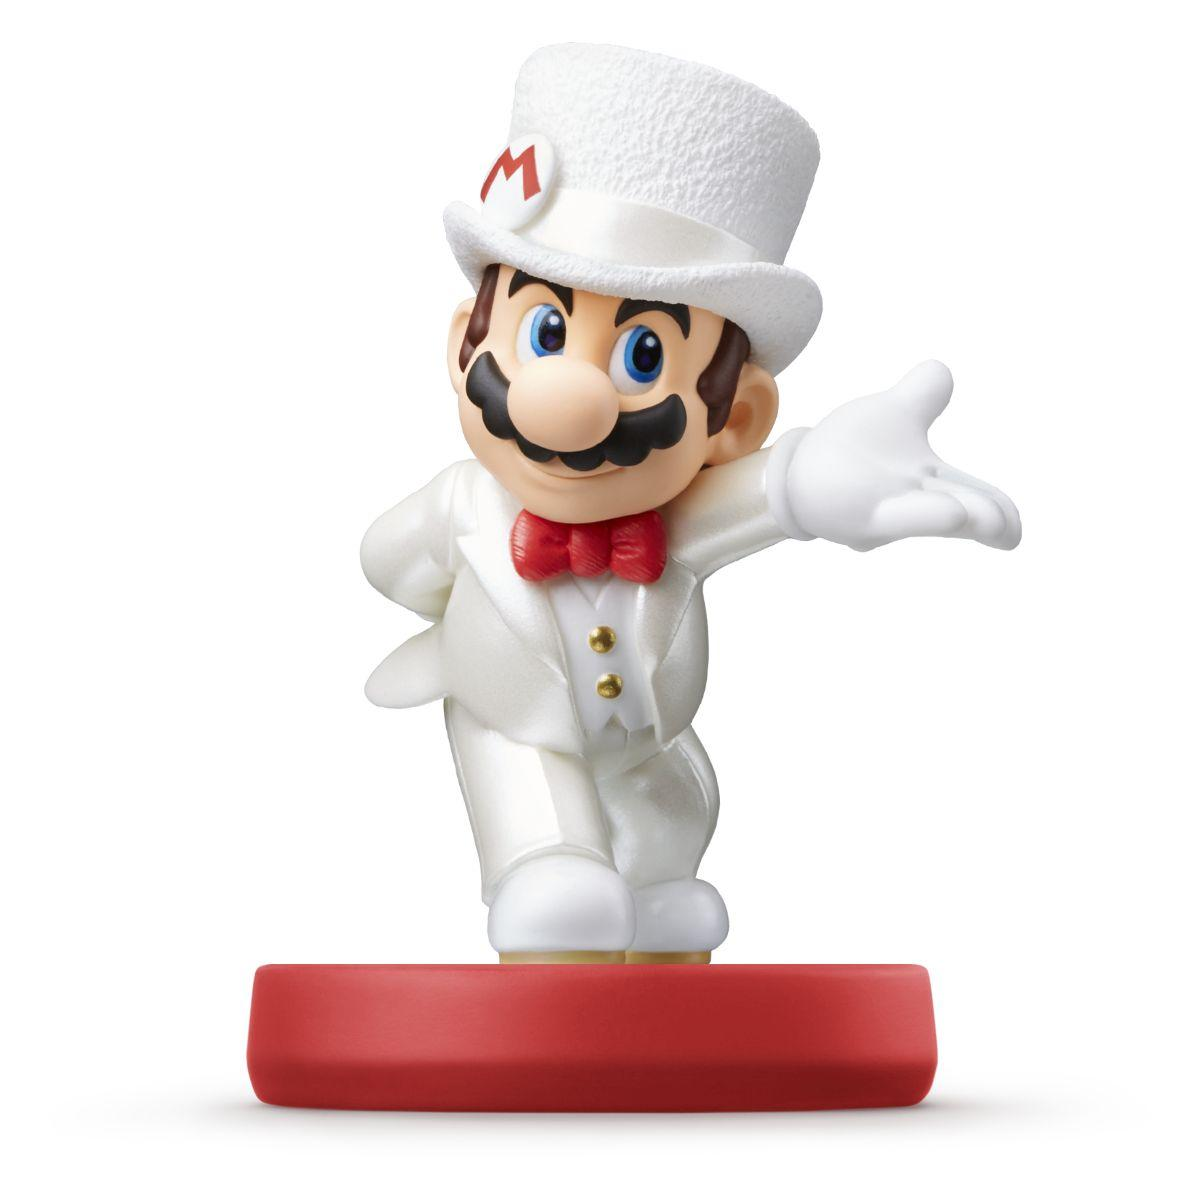 Figurine nintendo amiibo mario tenue de (photo)